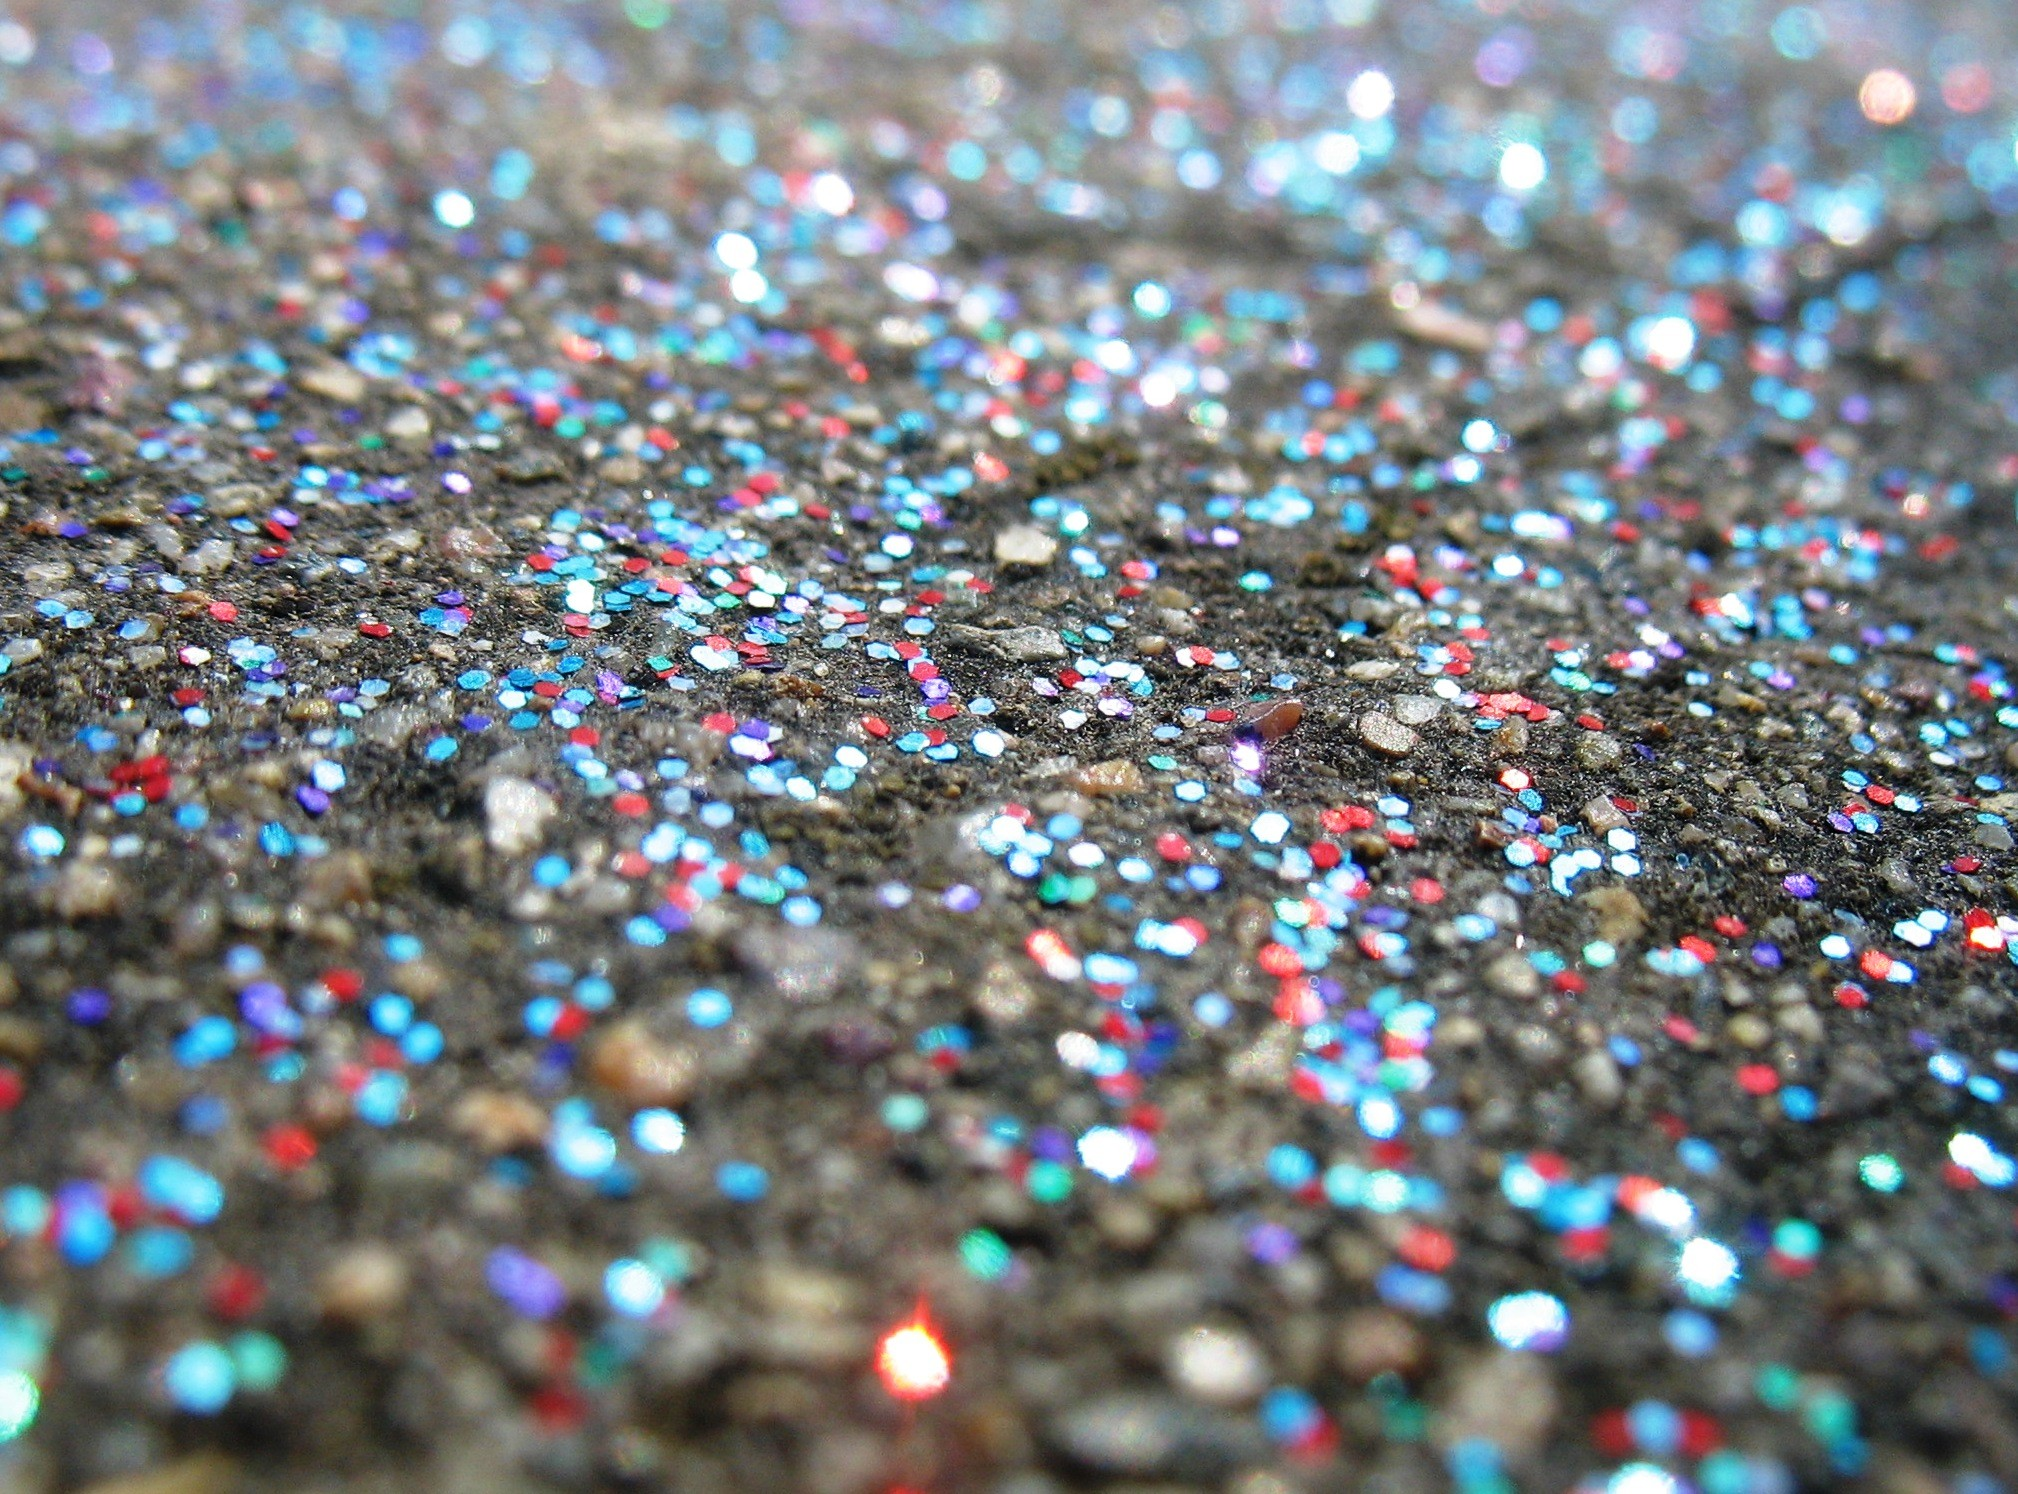 Glitter wallpaper download free awesome backgrounds for 2018x1494 full size glitter wallpaper 2018x1494 for phone download download voltagebd Image collections